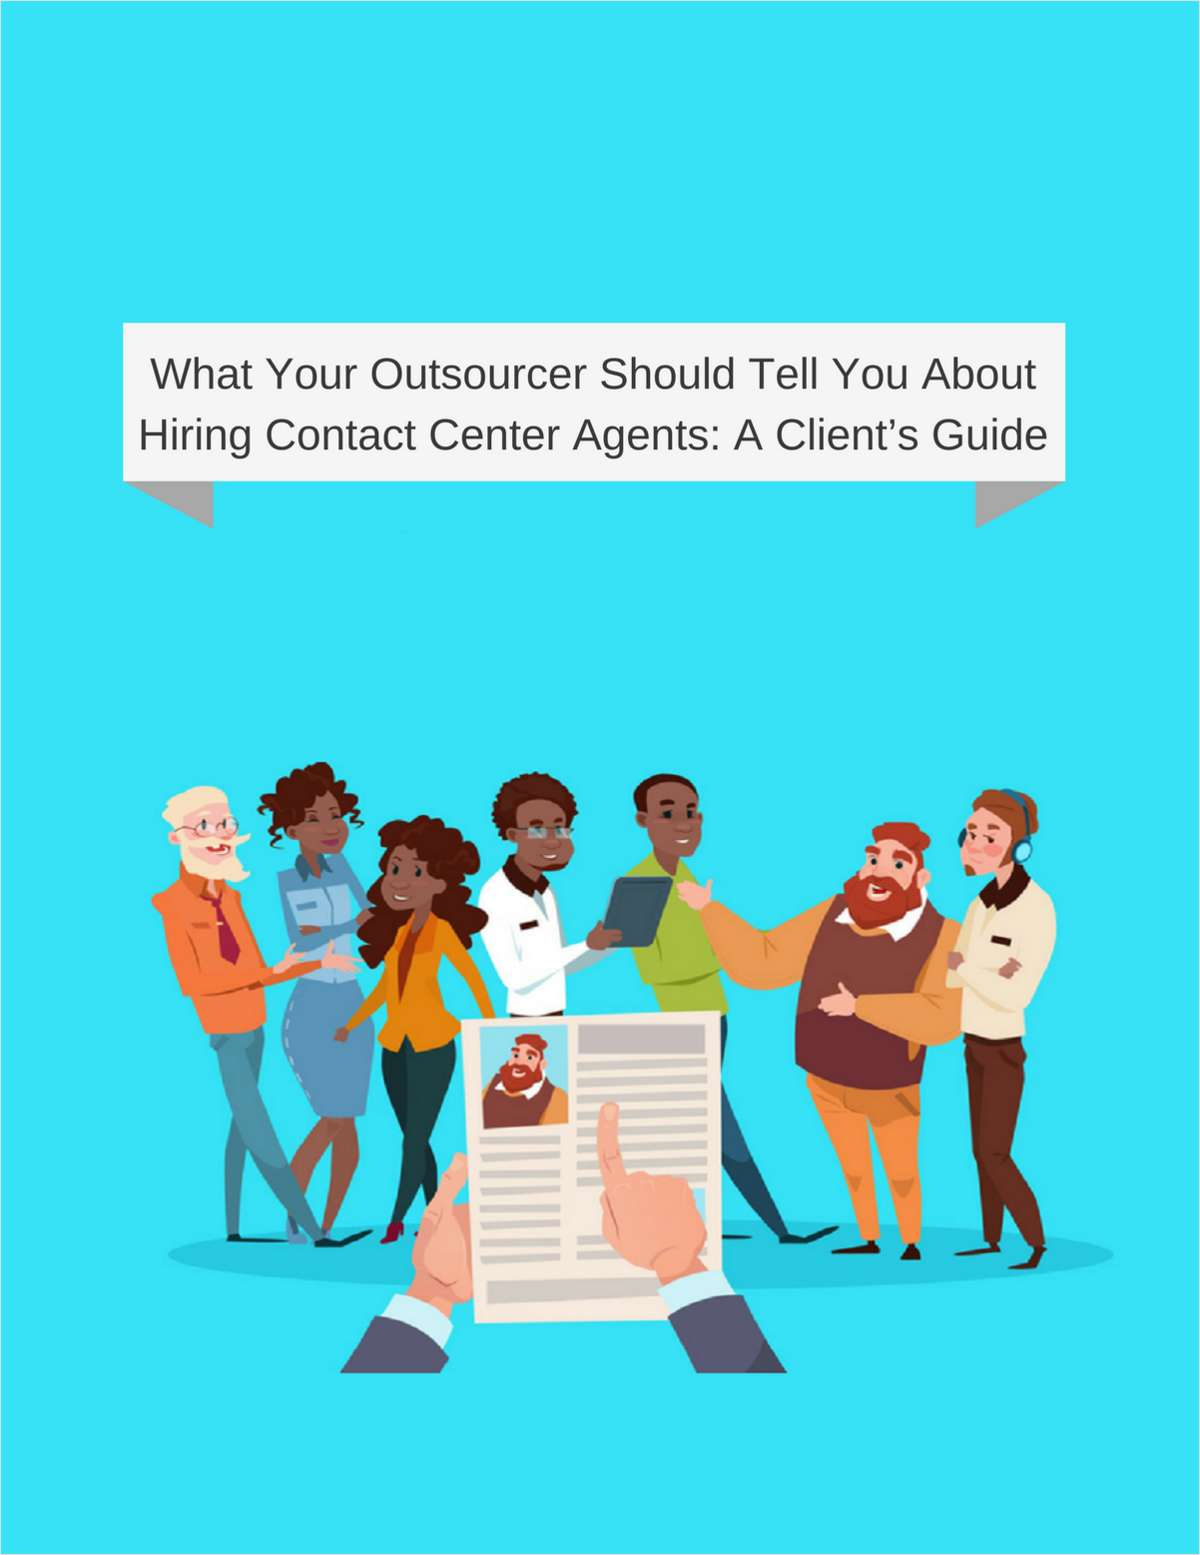 What Your Outsourcer Should Tell You About Hiring Contact Center Agents: A Client's Guide